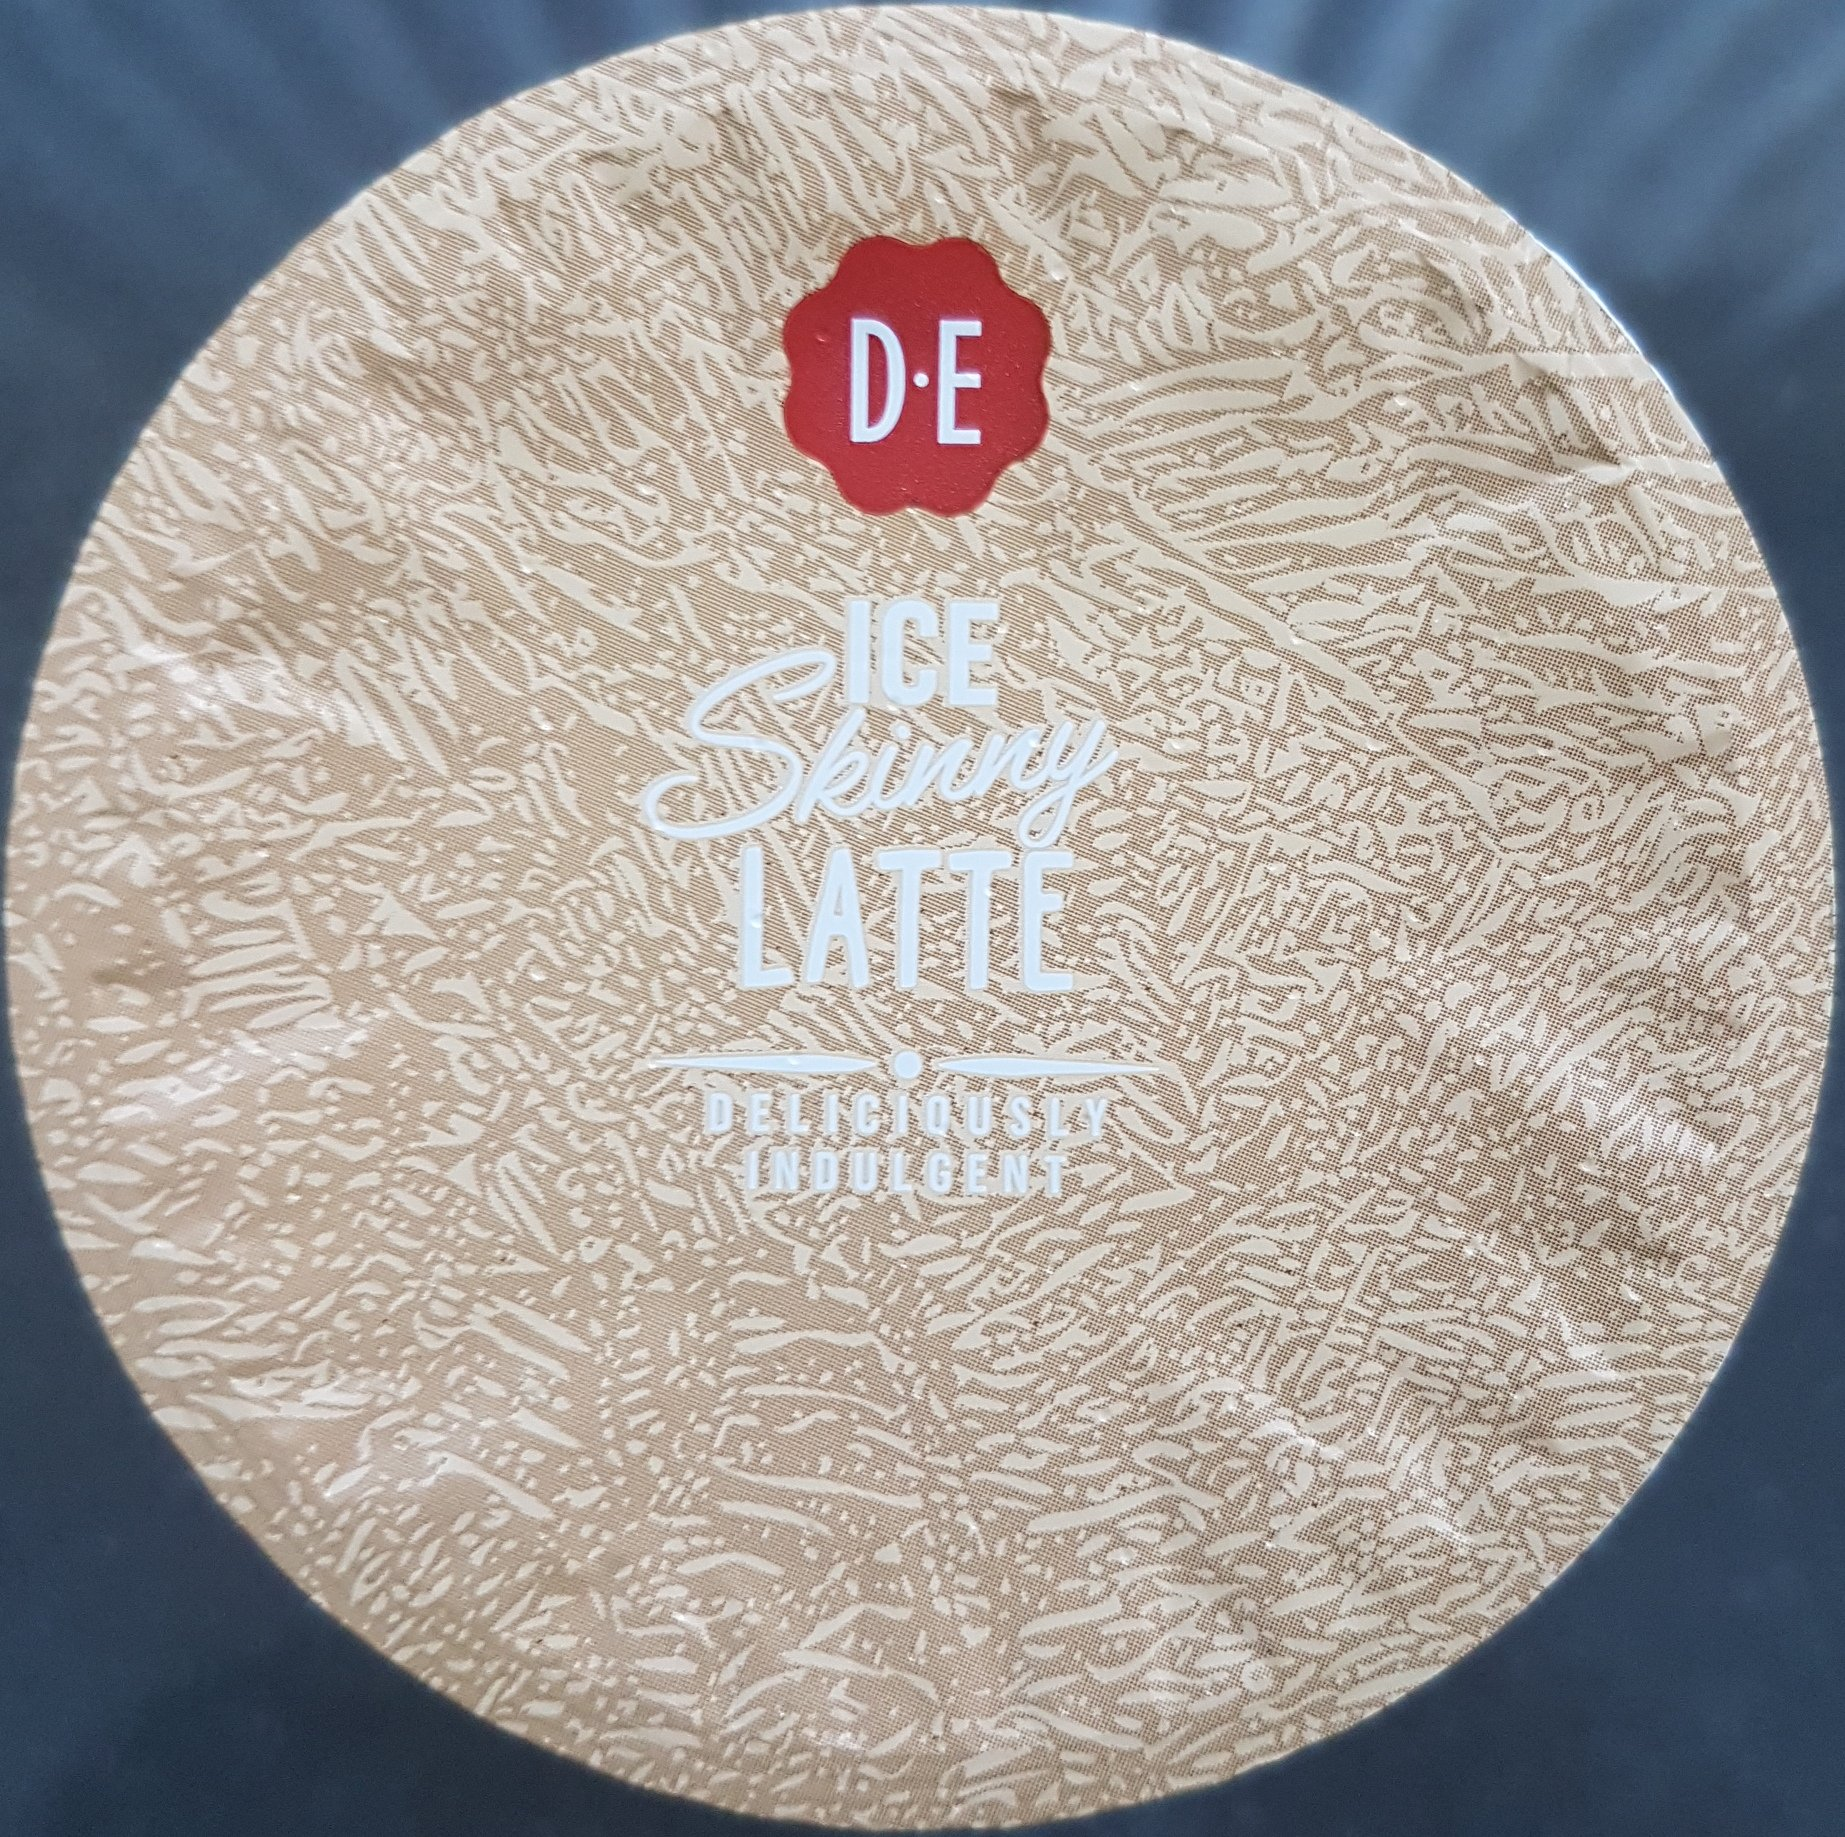 Douwe Egberts - Ice Skinny #Latte top - itstartswithacoffee.com #coffee #coldcoffee #icecoffee